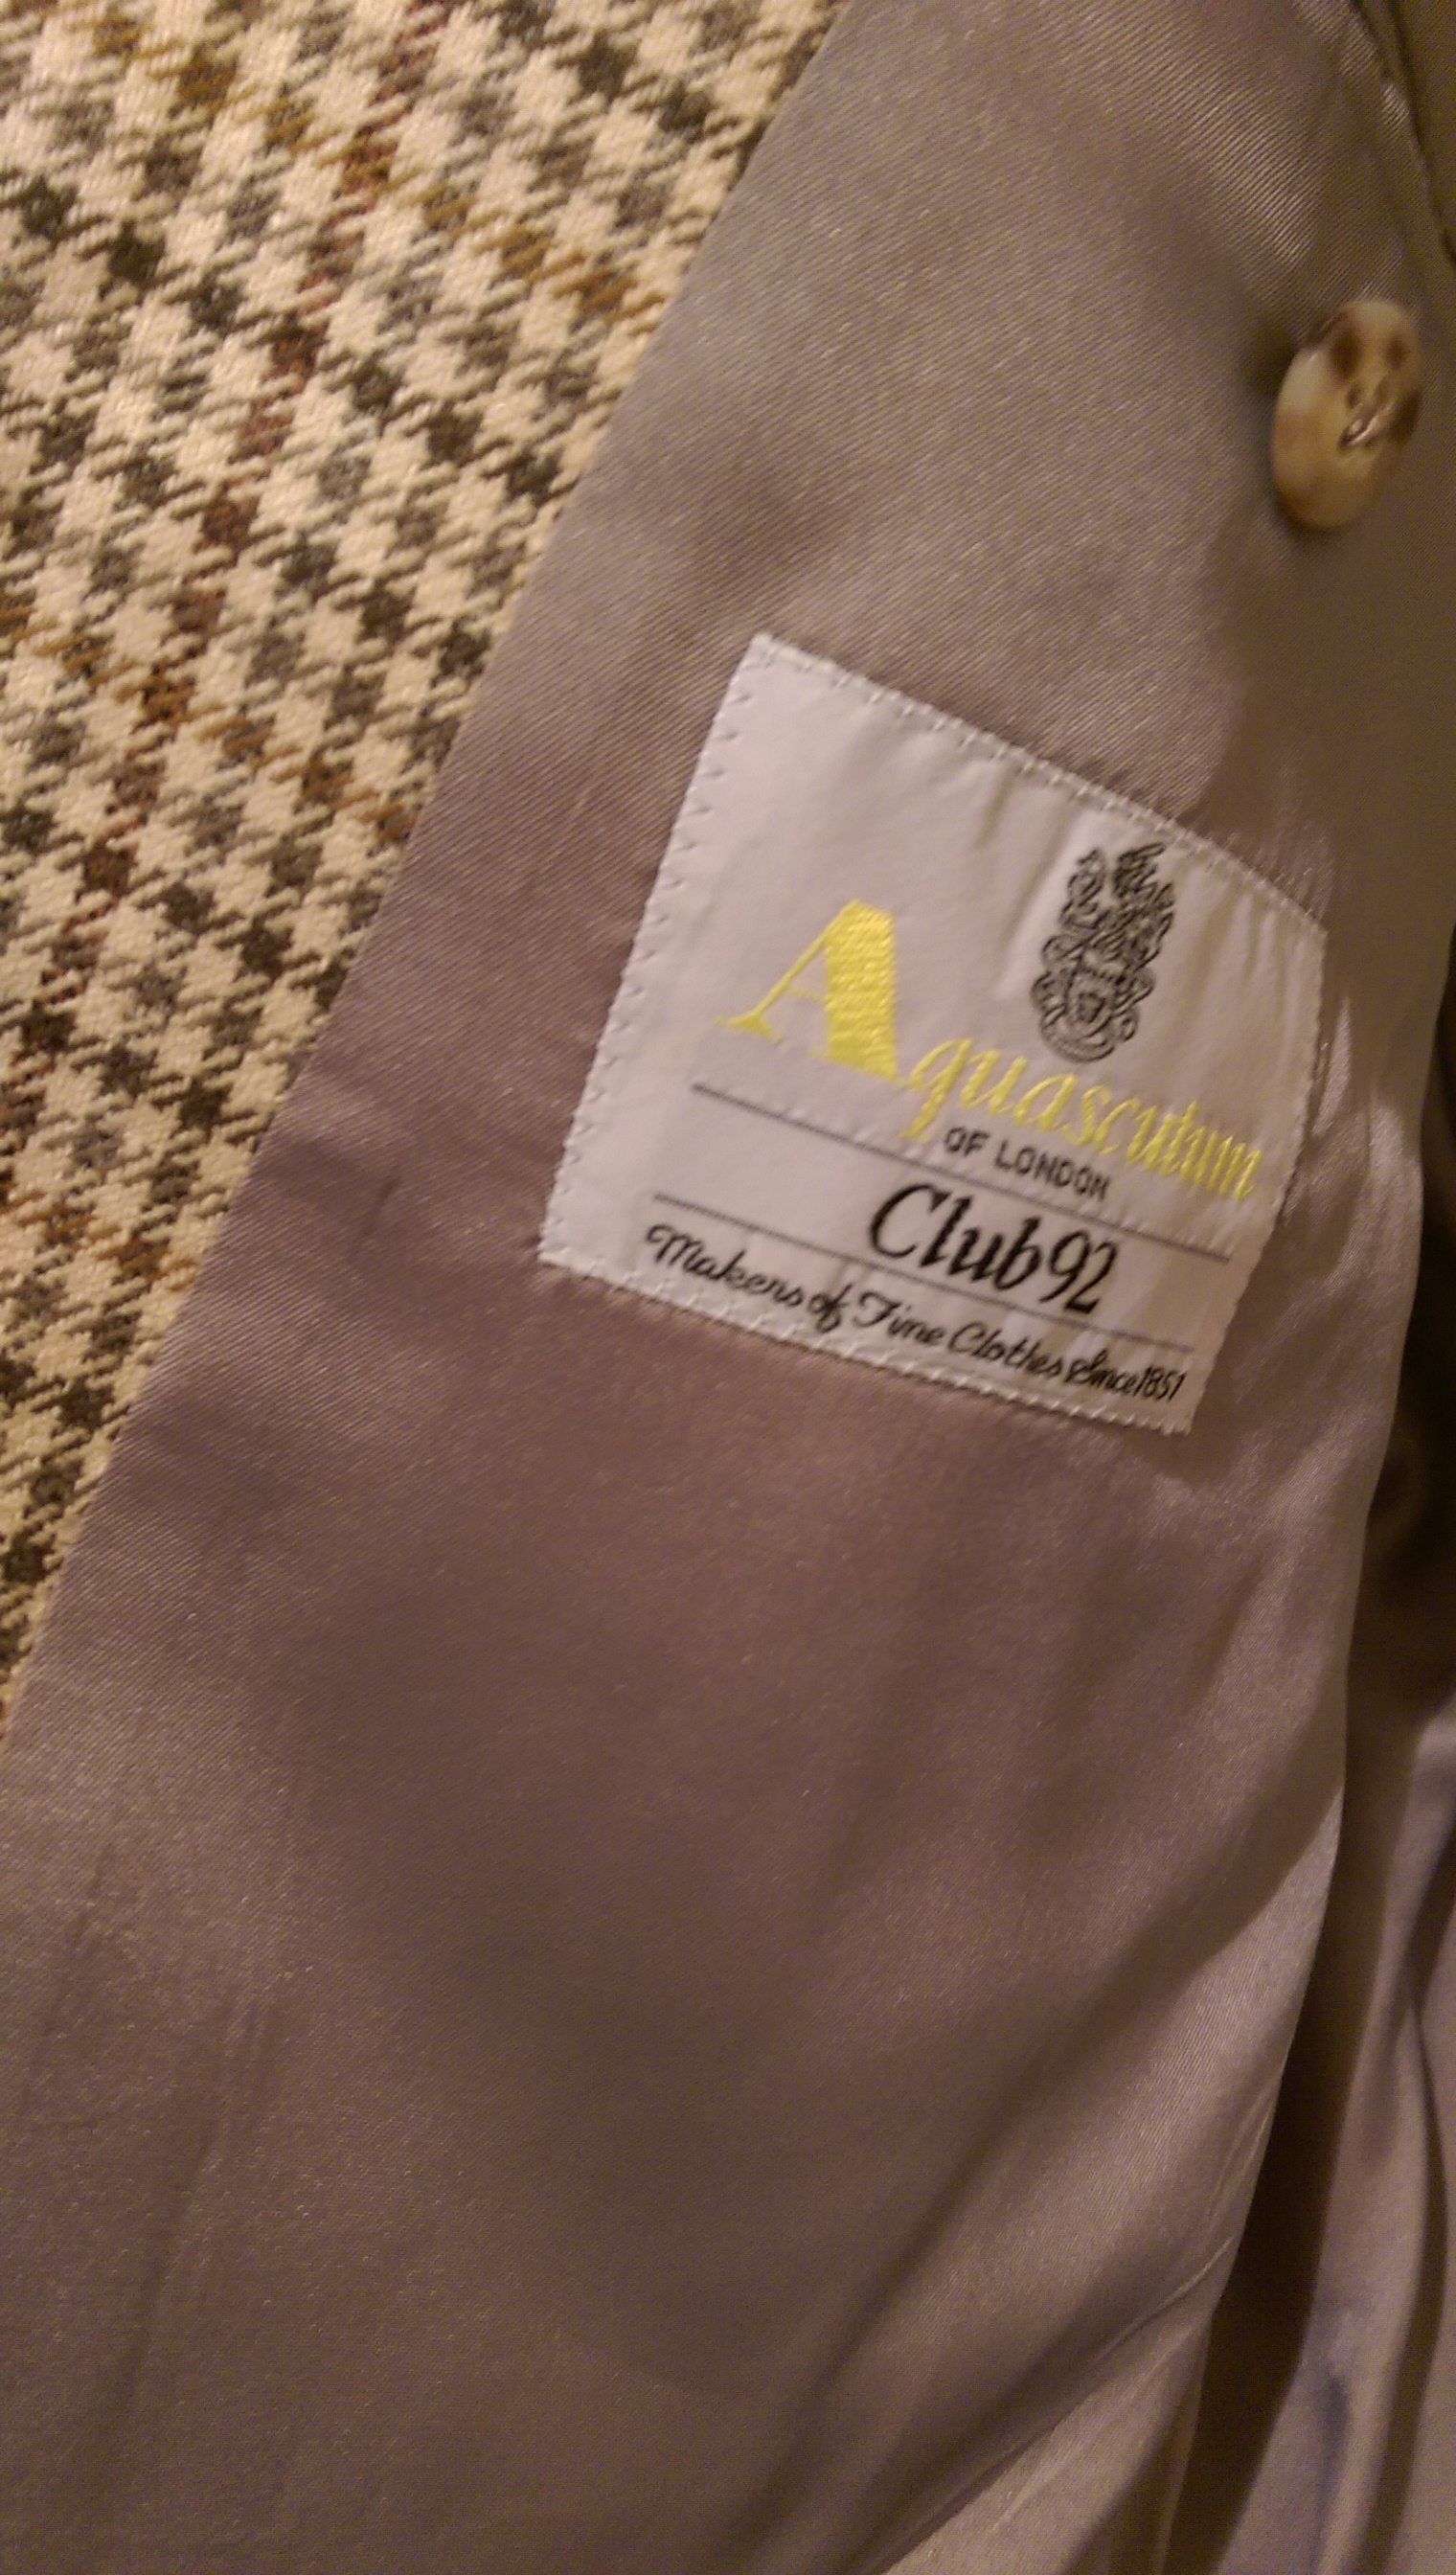 Linen shirts shops near me